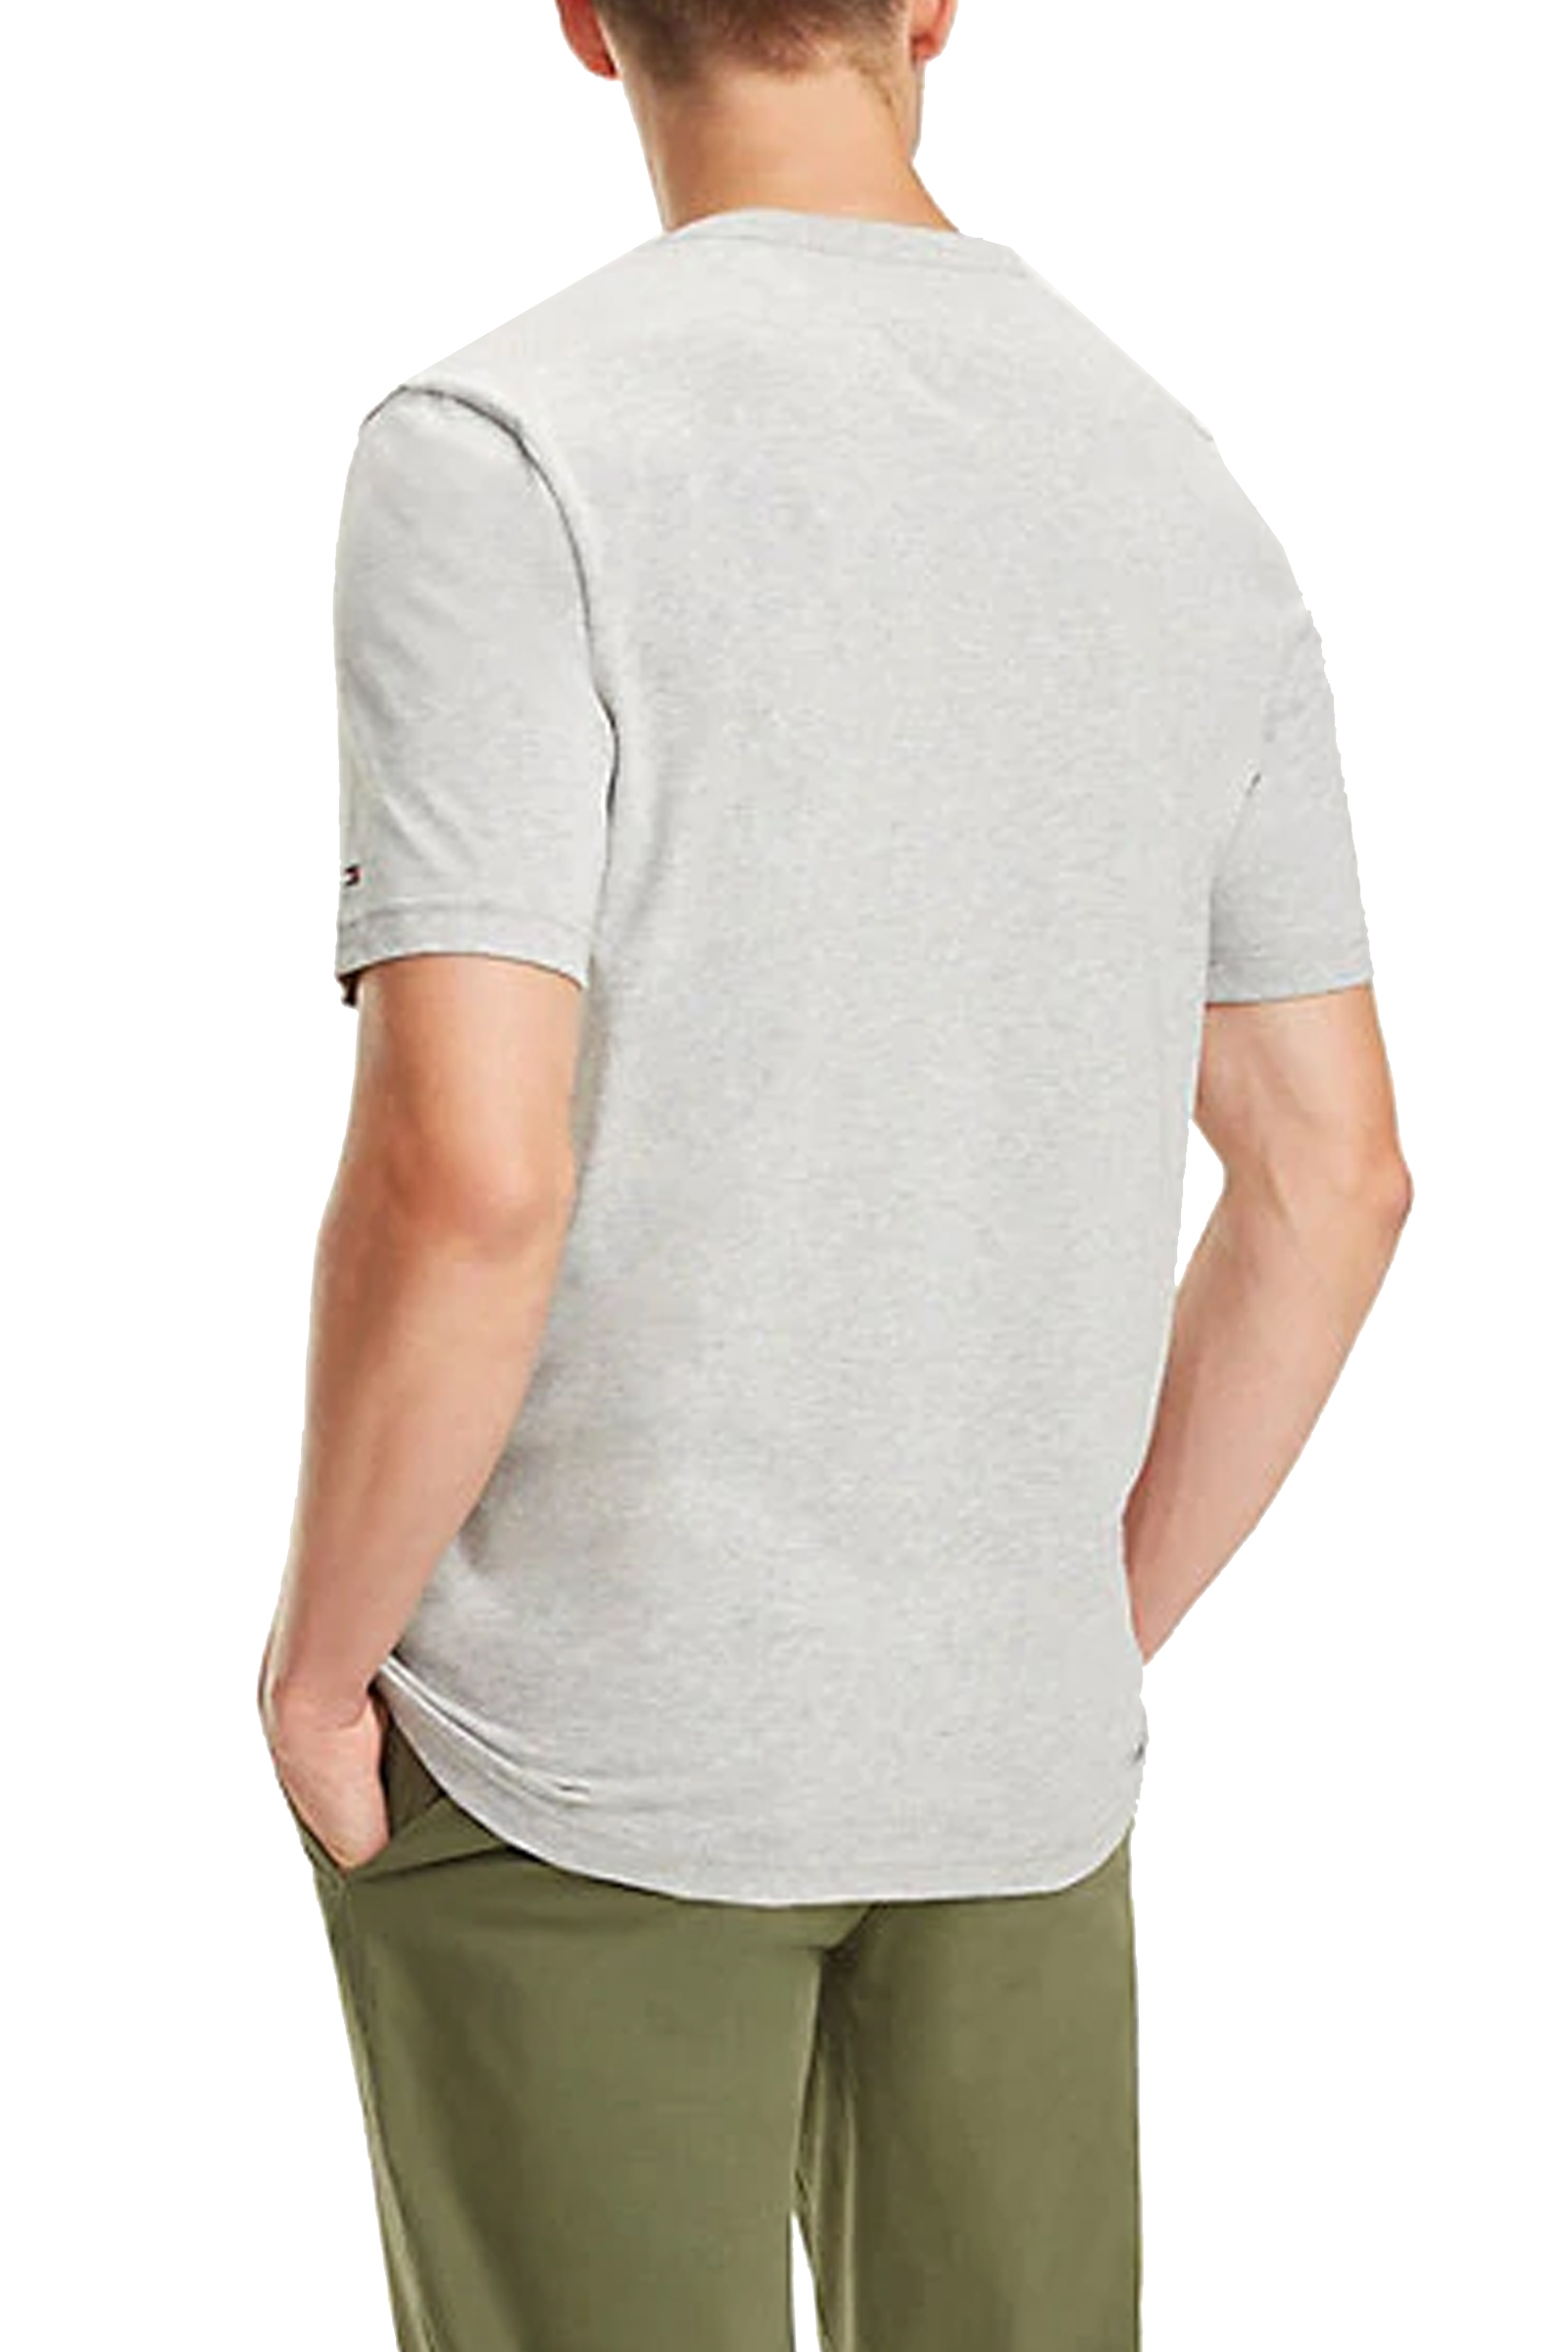 new product 26734 326a7 TOMMY HILFIGER T-Shirt Uomo